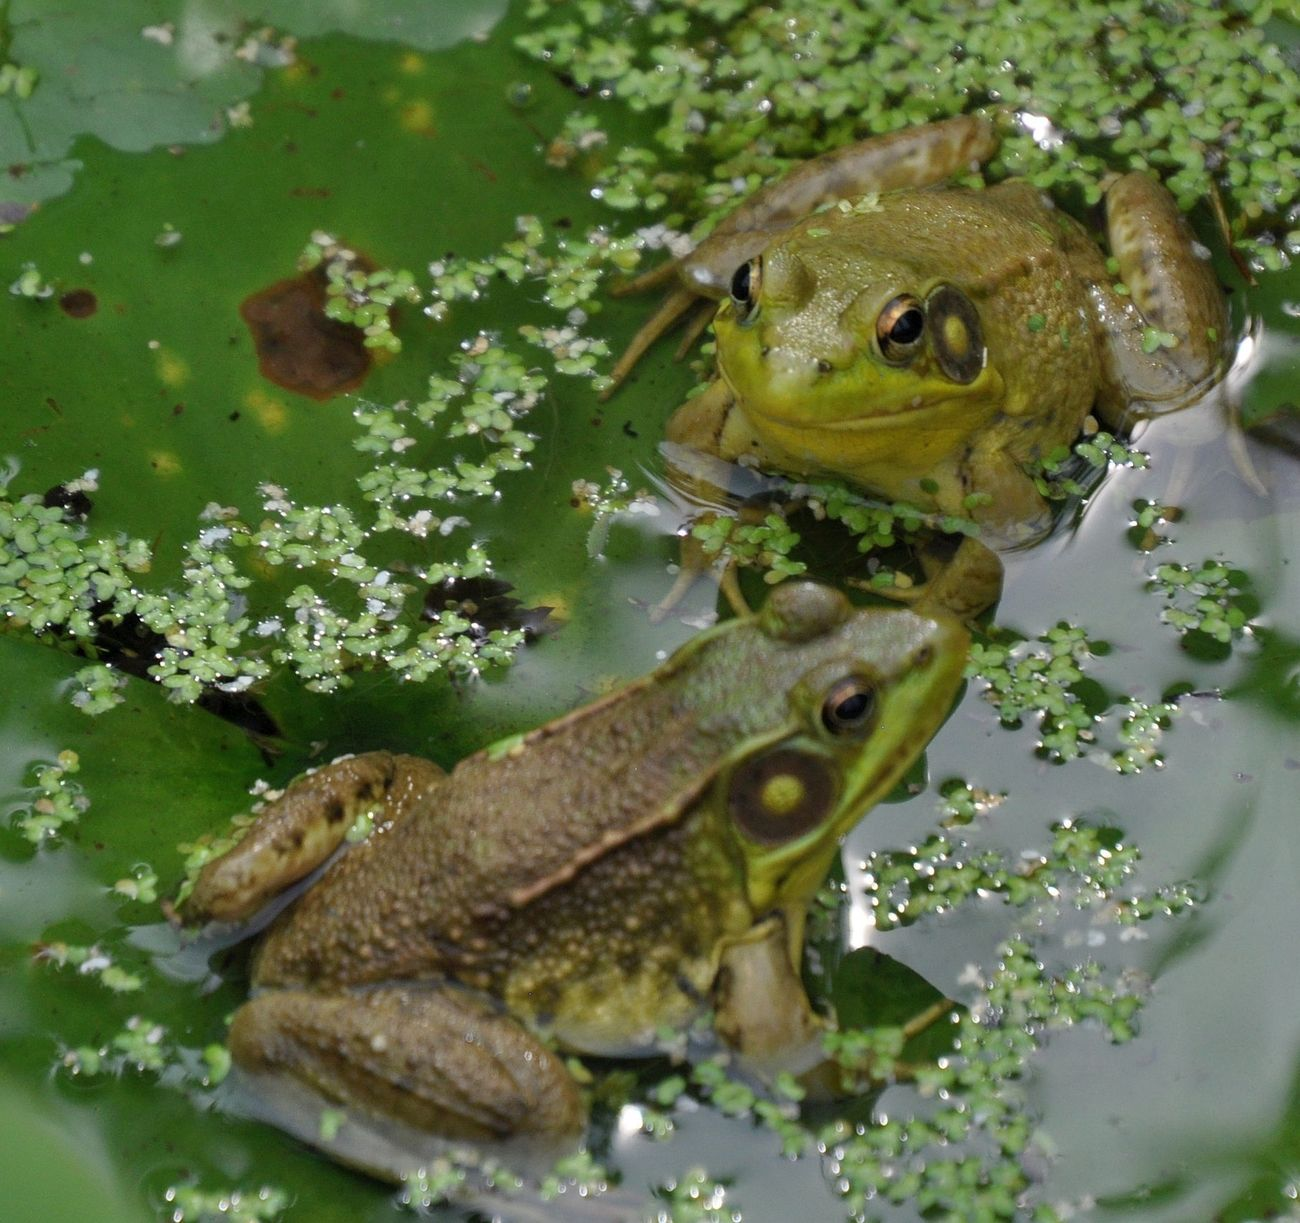 Frogs popped up and hopped on the same Lily Pad.